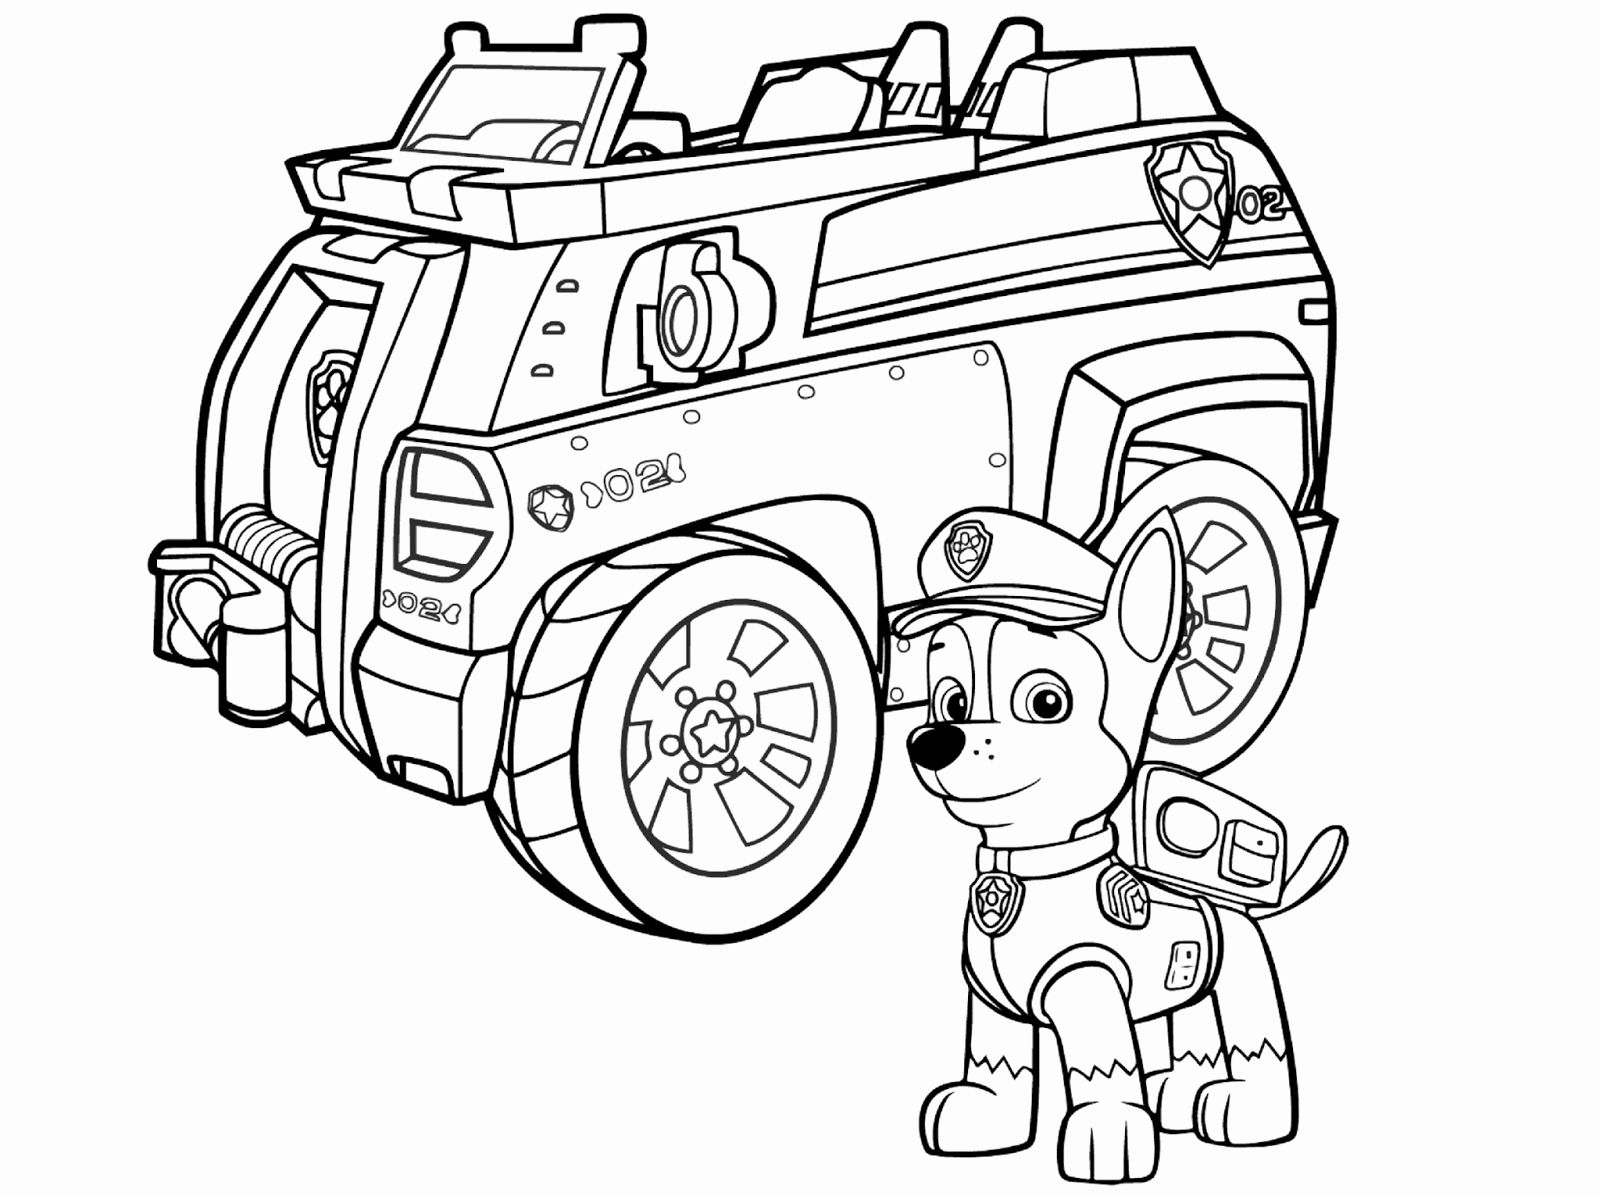 Paw Patrol Coloring Page Inspirational Free Nick Jr Paw Patrol Coloring Pages Paw Patrol Coloring Pages Paw Patrol Coloring Truck Coloring Pages